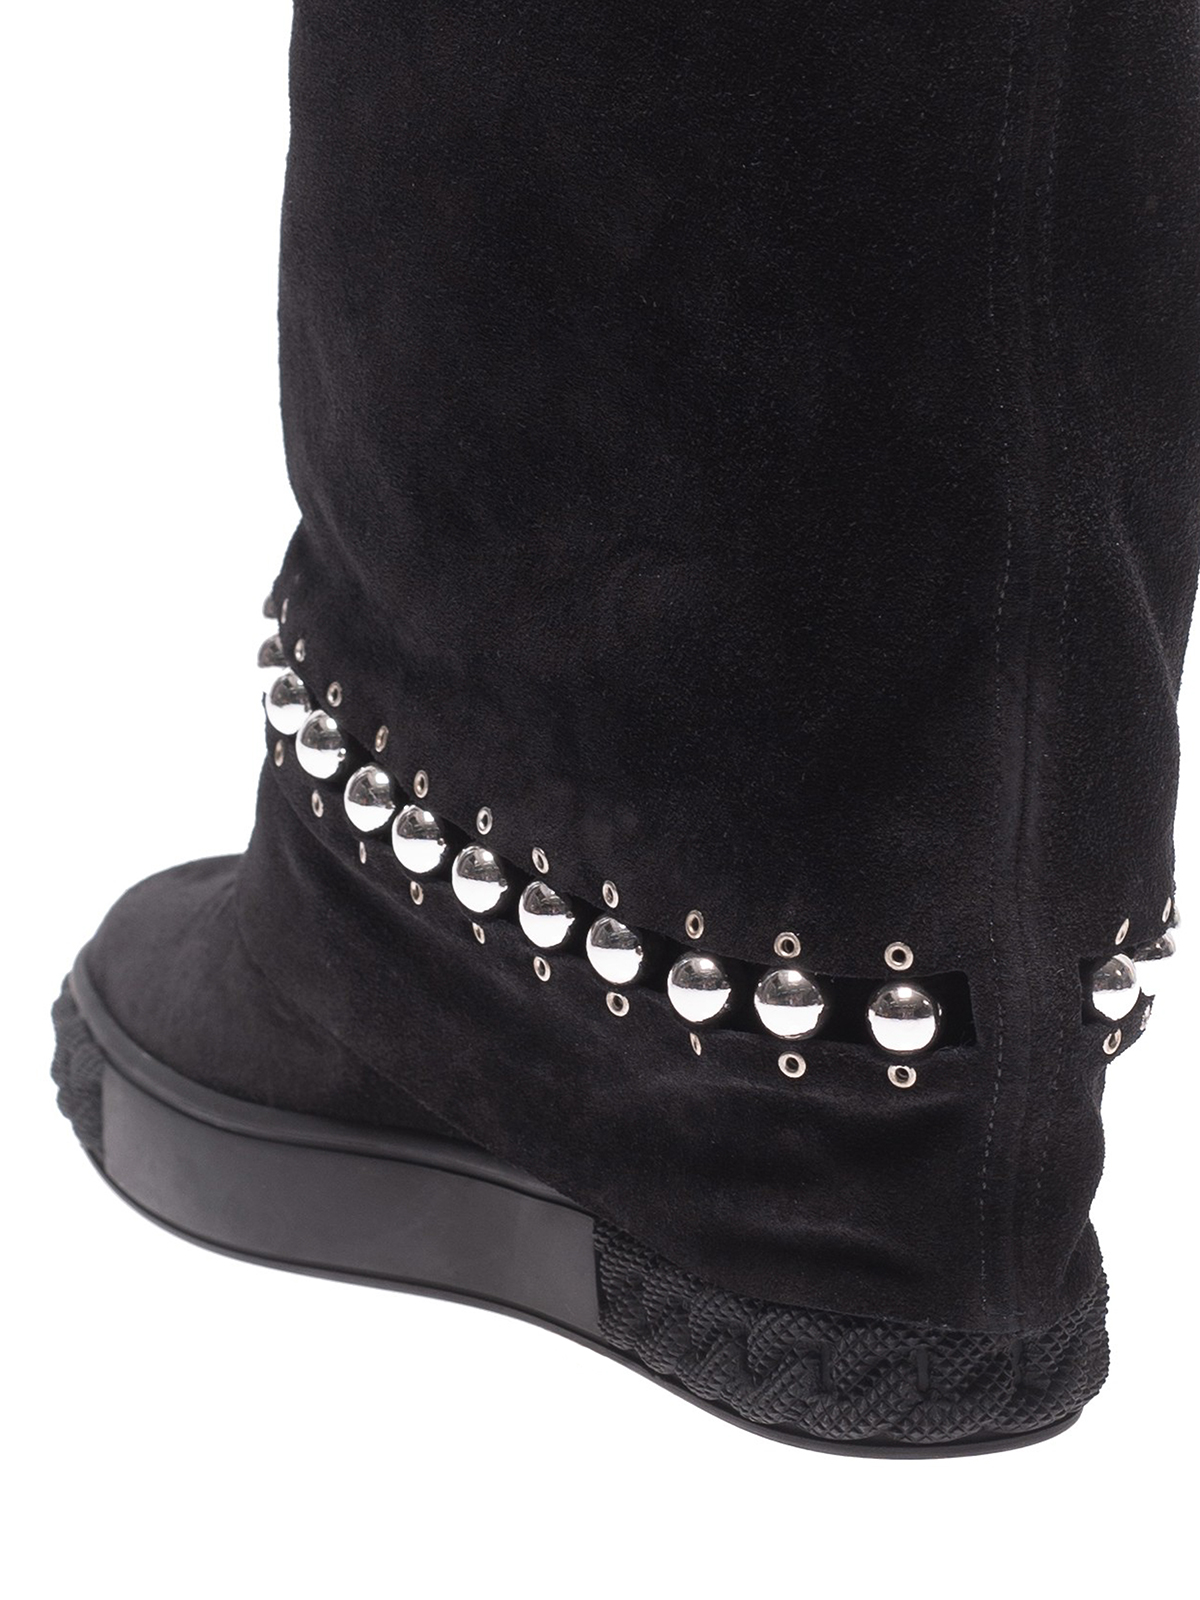 Casadei - Black suede embellished sneaker sole booties - ankle boots ... 46144c88f3c